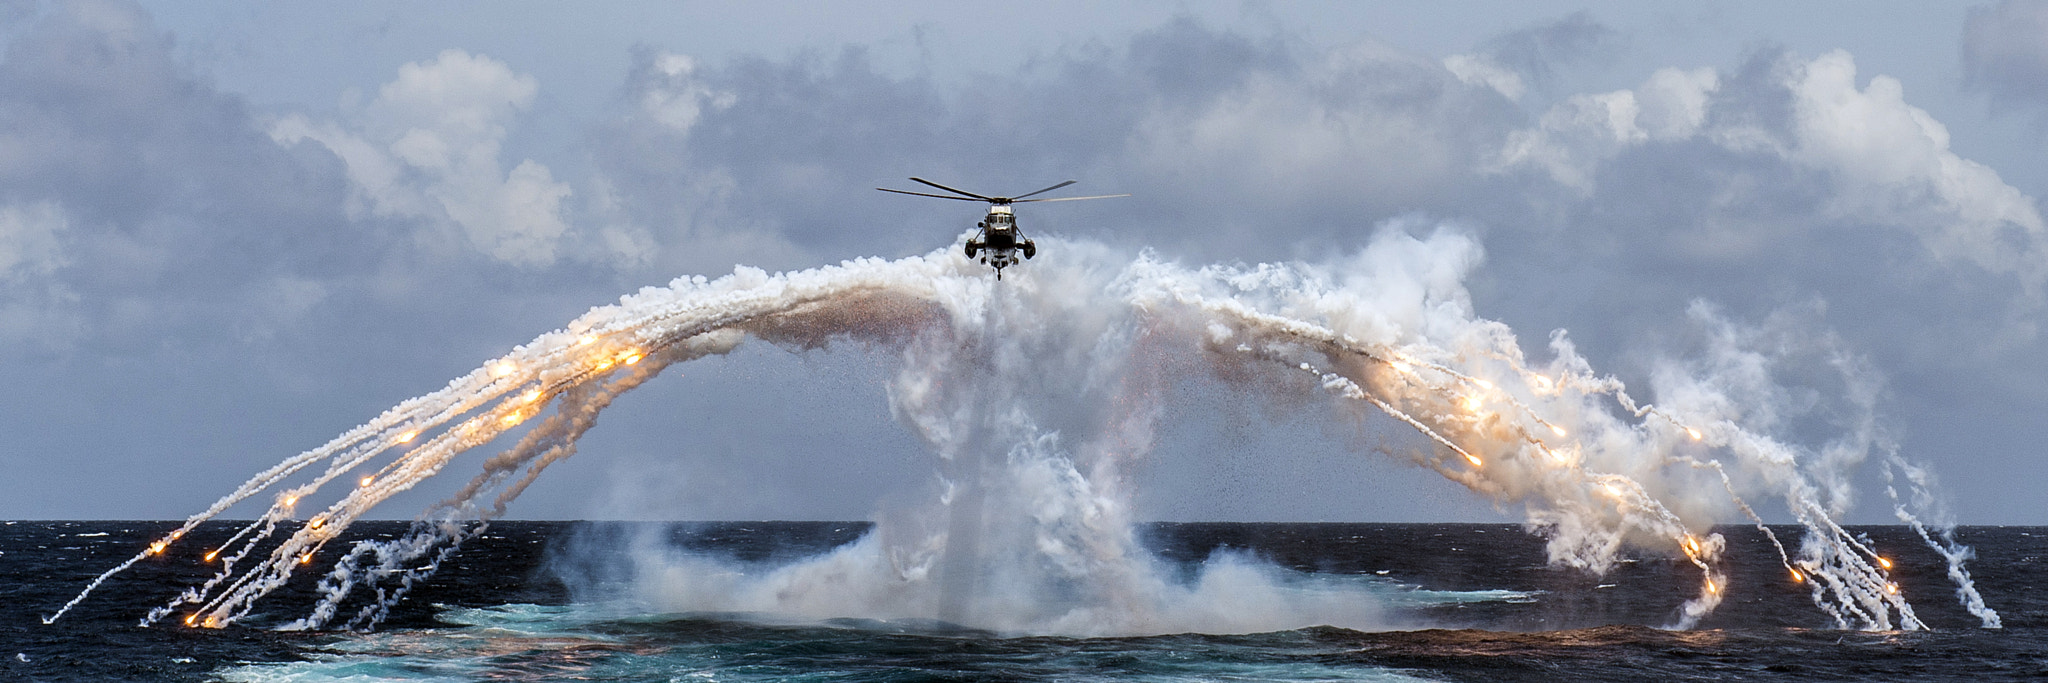 Photograph Helicopter deploying her flares by Michael  Bastien  on 500px